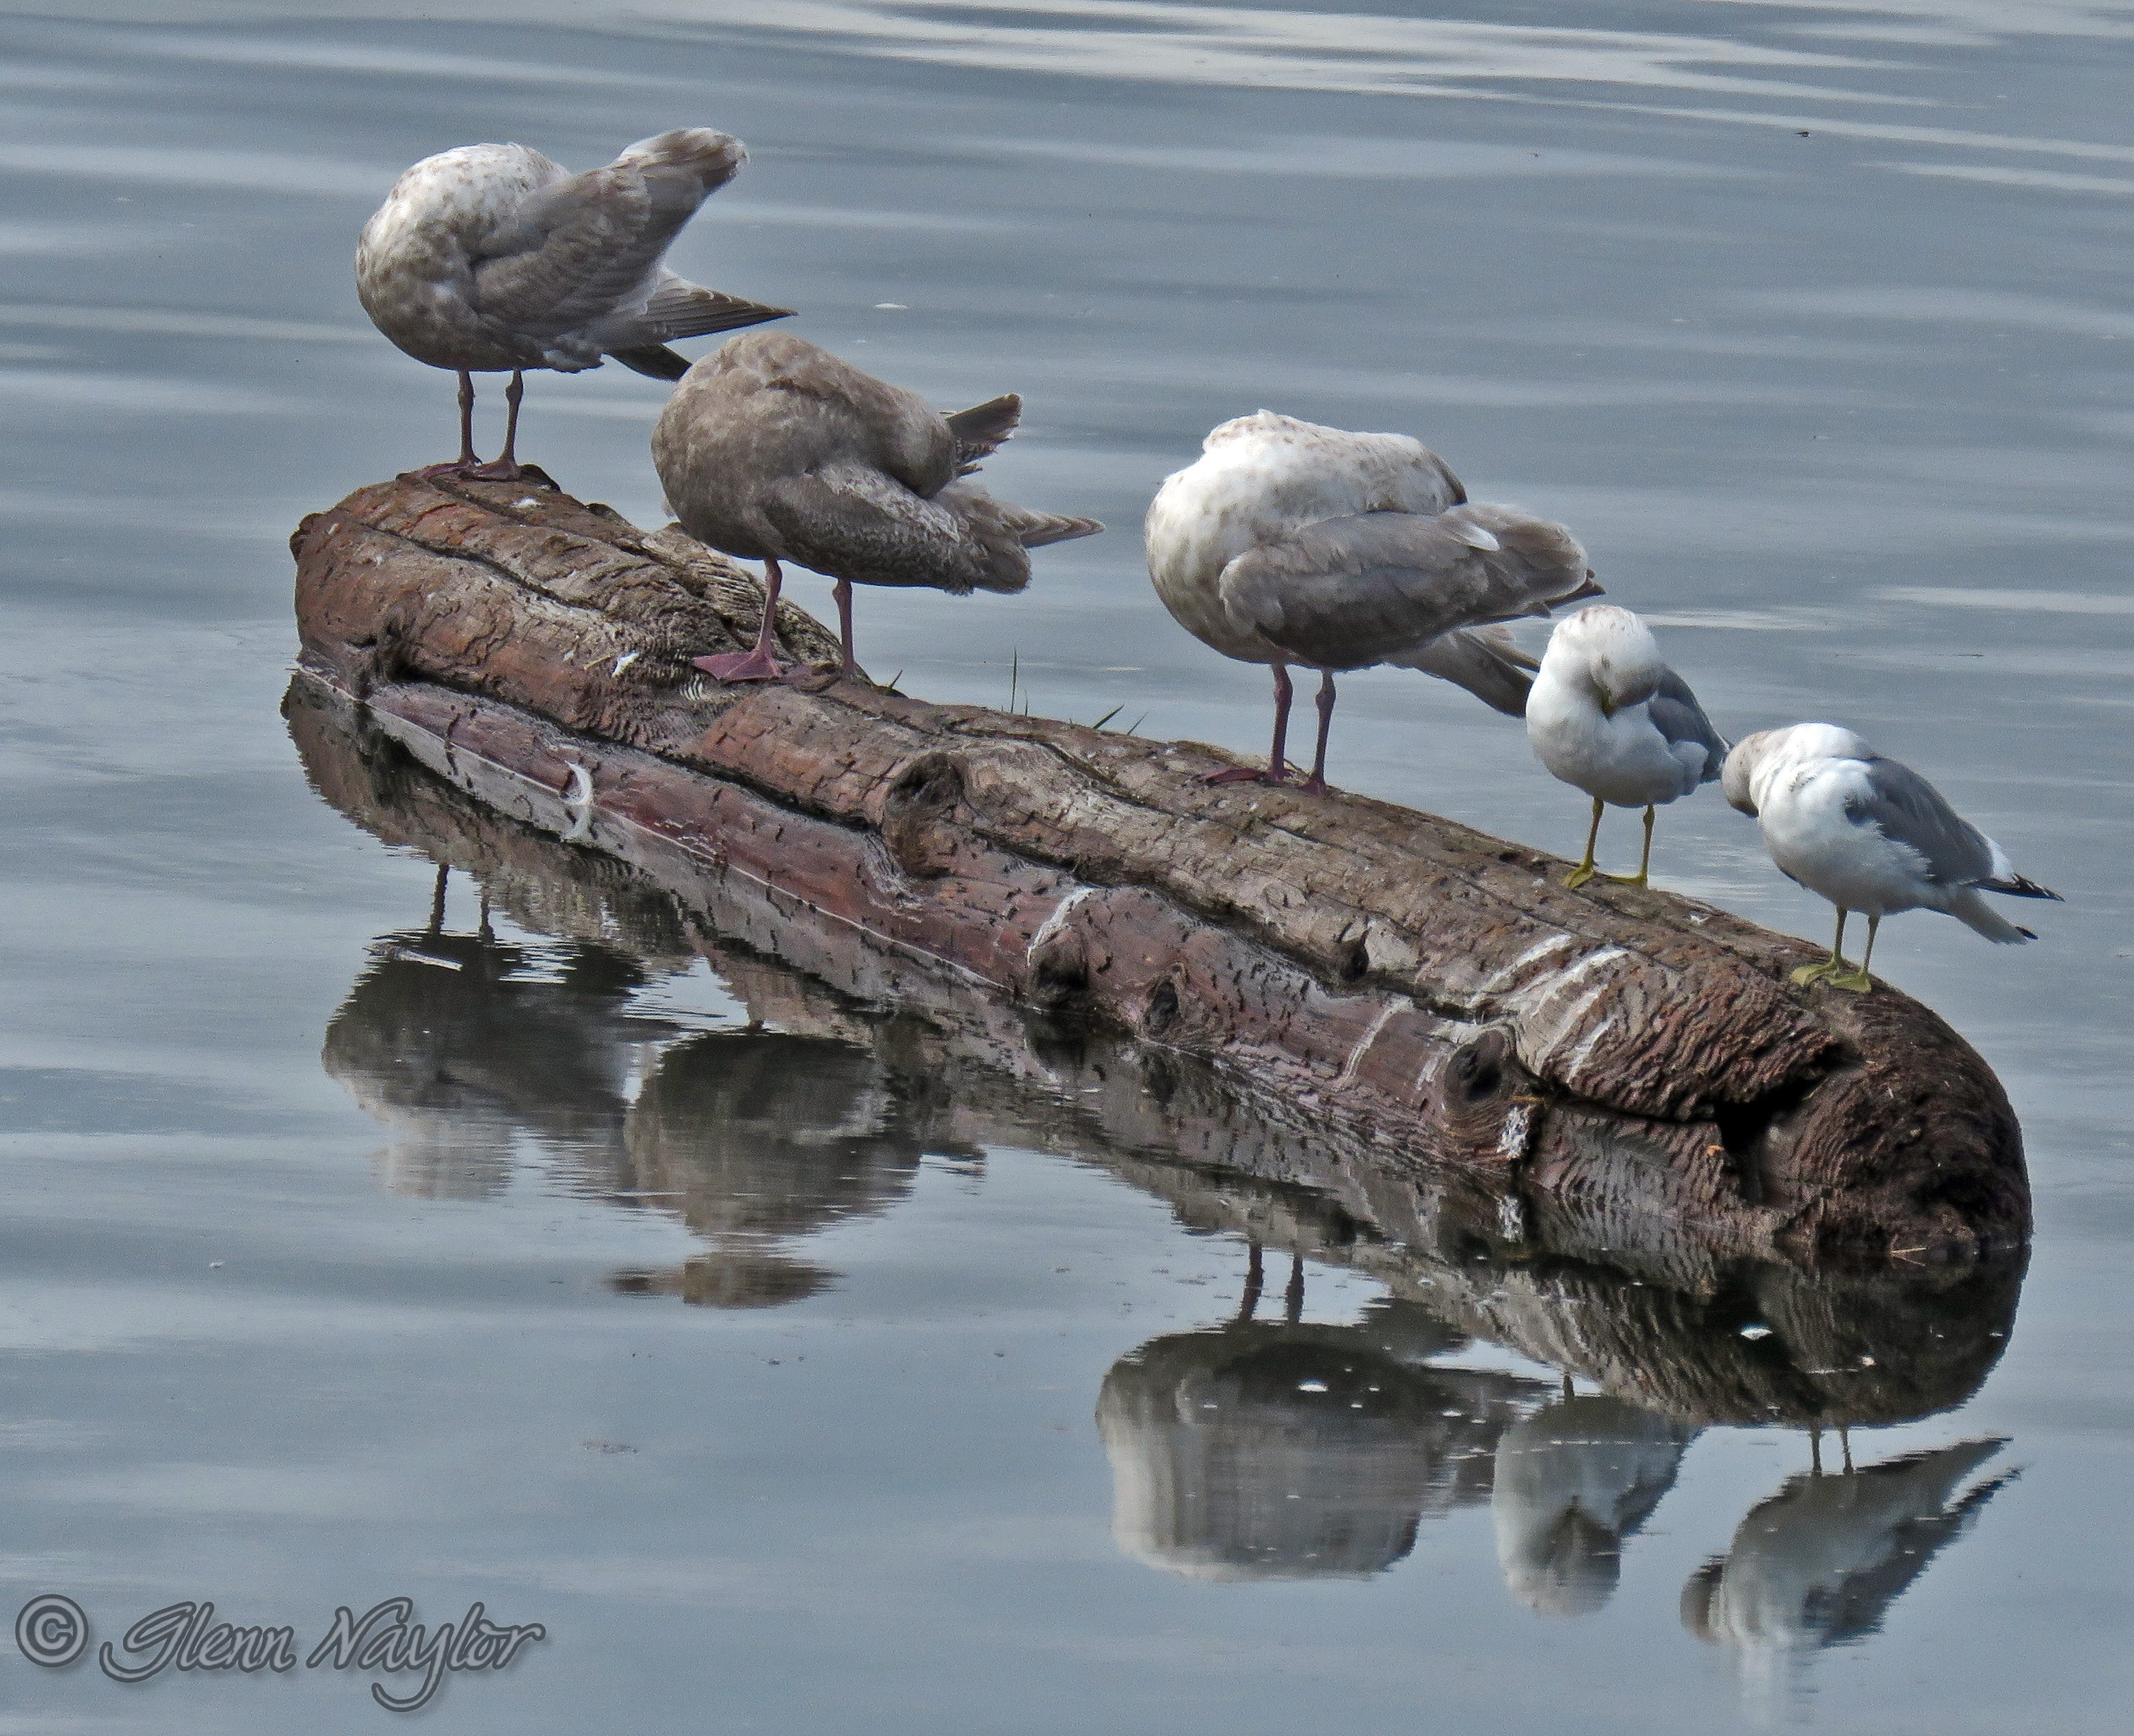 Cleaning Day! Seagulls in Comox Bay